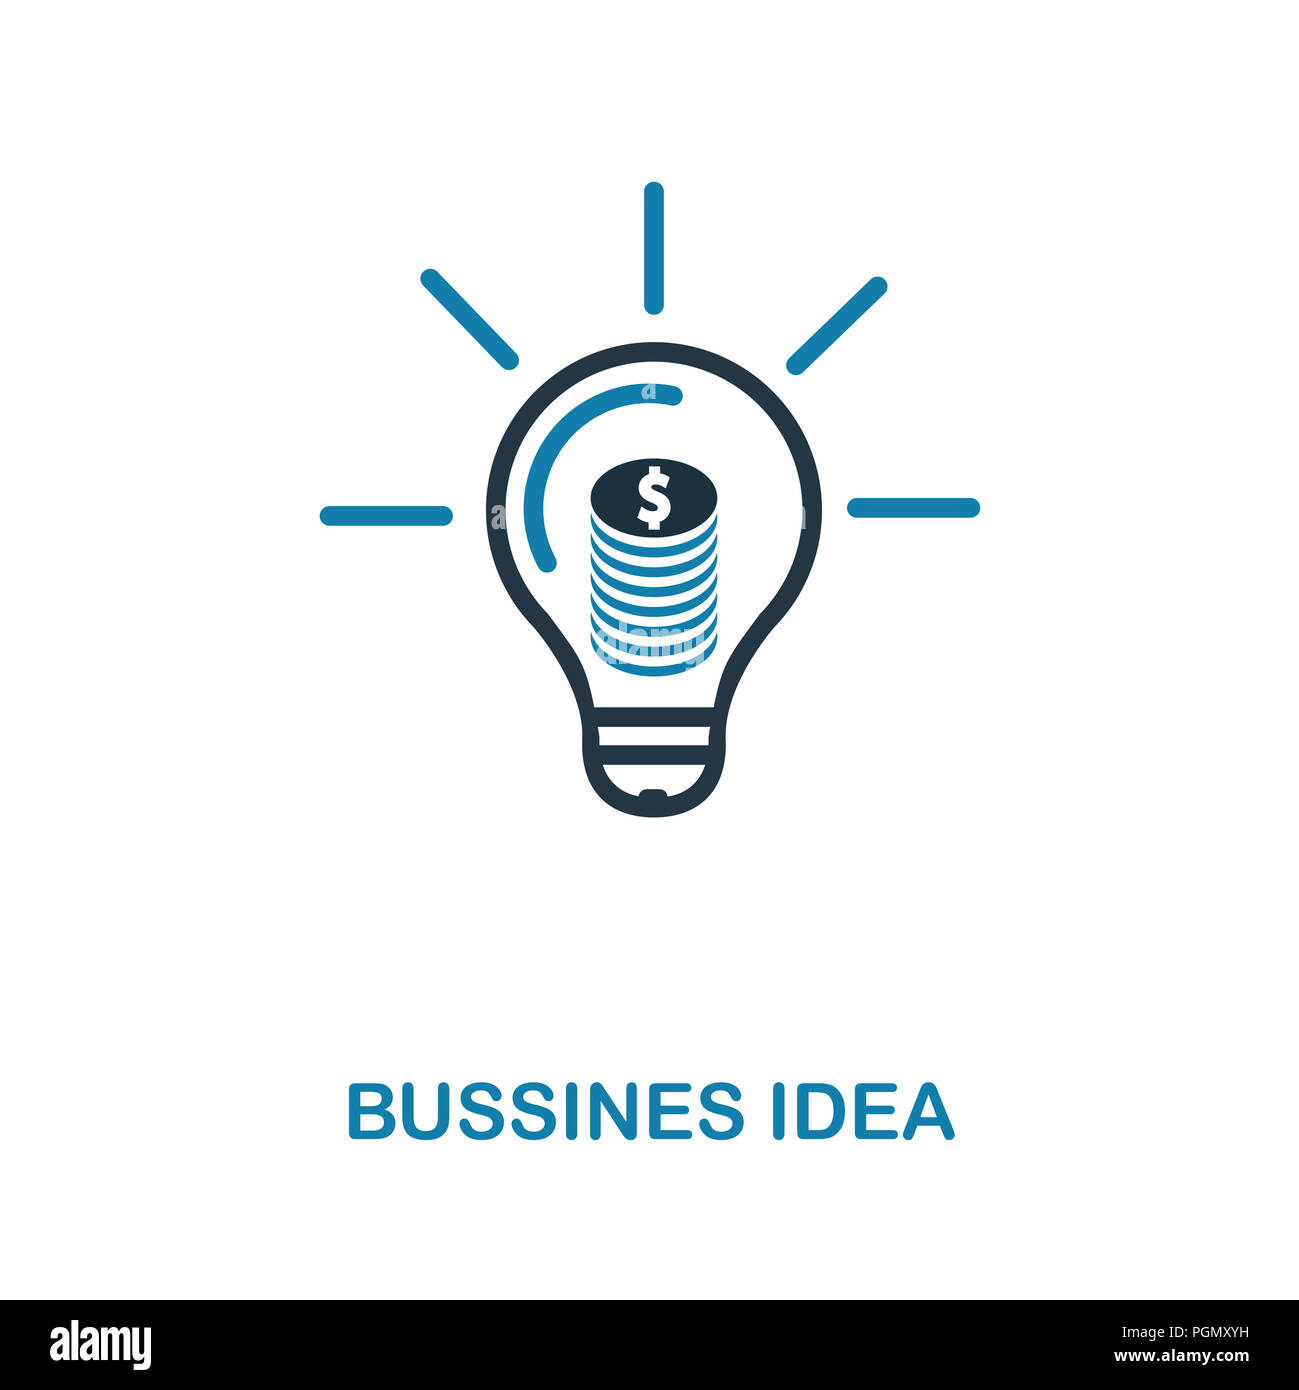 Bussines Idea Creative Icon Simple Element Illustration Concept Symbol Design From Money